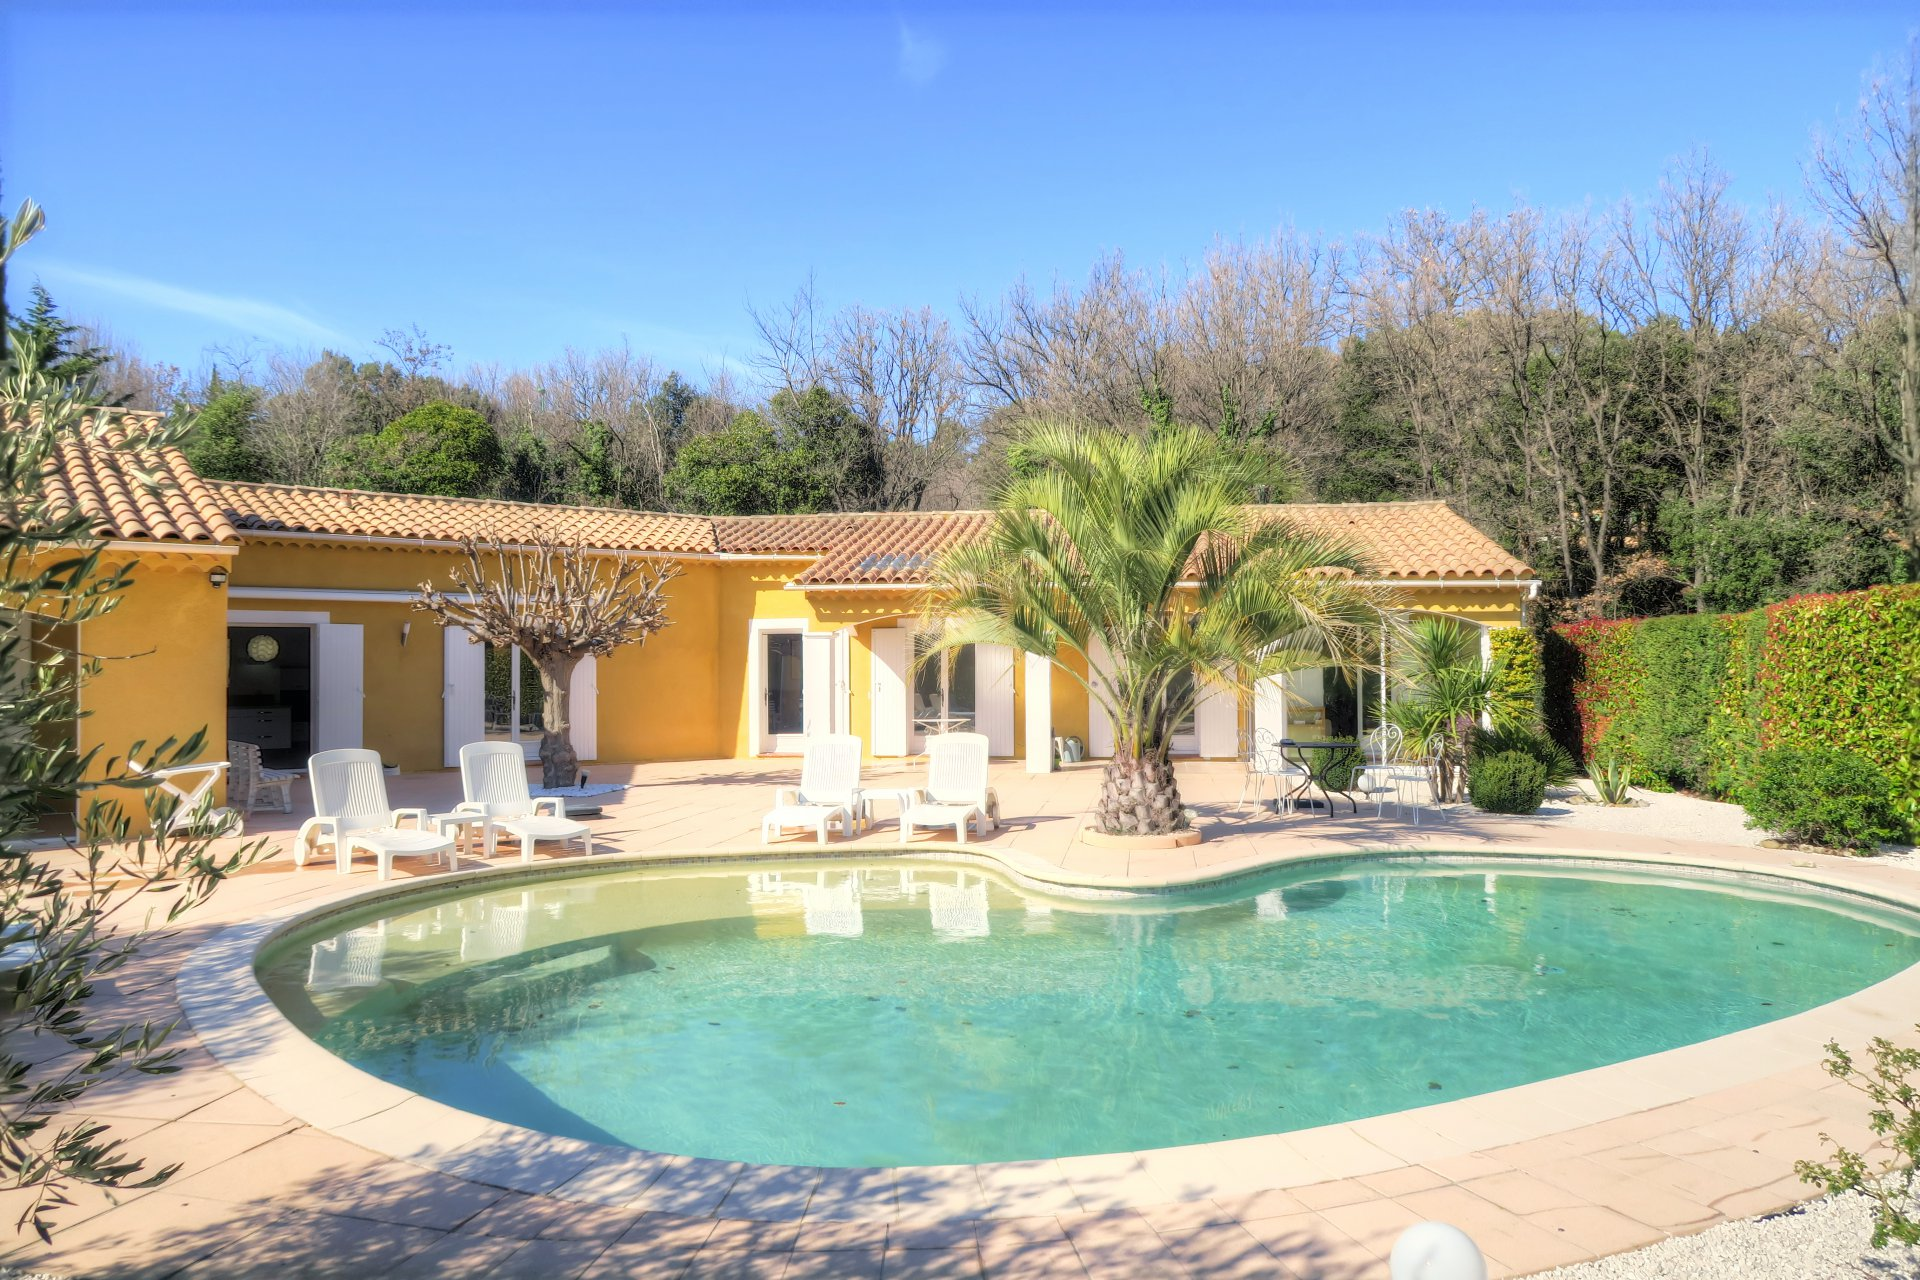 Large villa with pool walking distance to the village of Lorgues